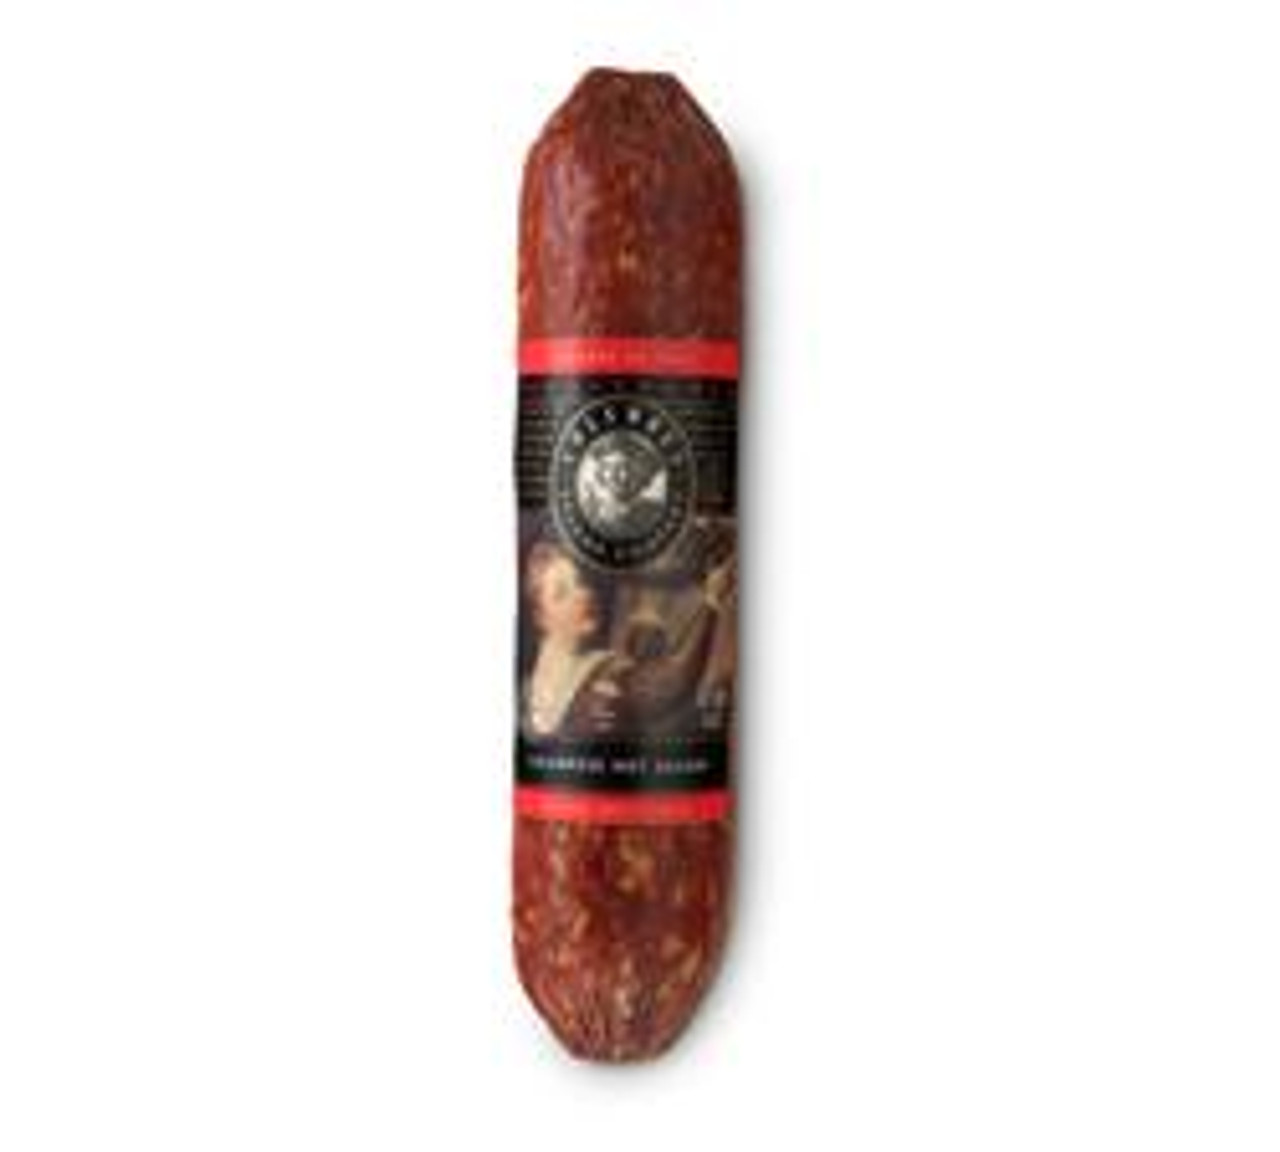 Dry Hot Salame Calabrese